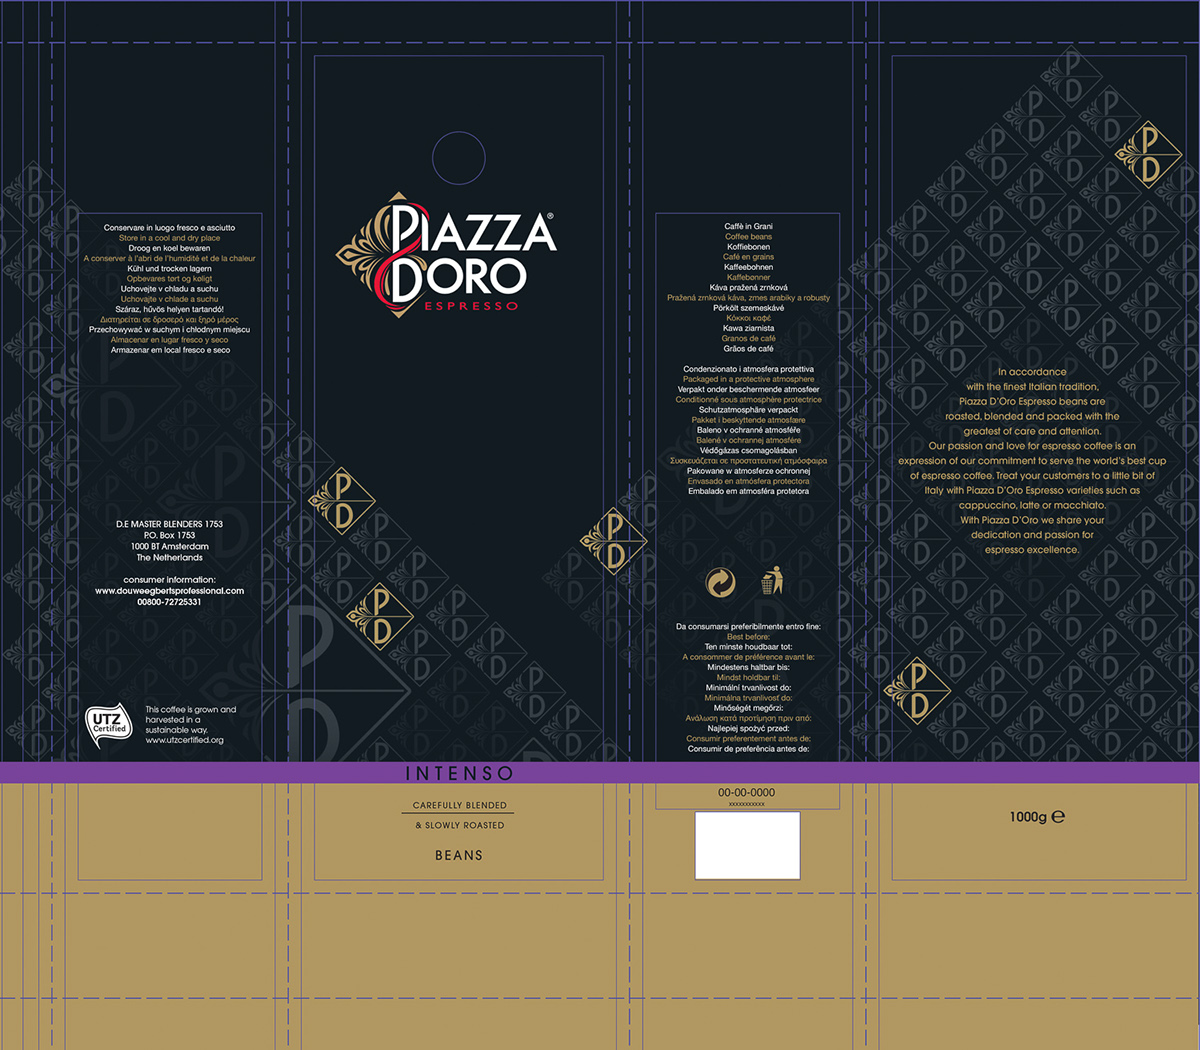 Print-ready files & 3D texturing PIAZZA D'ORO on Behance